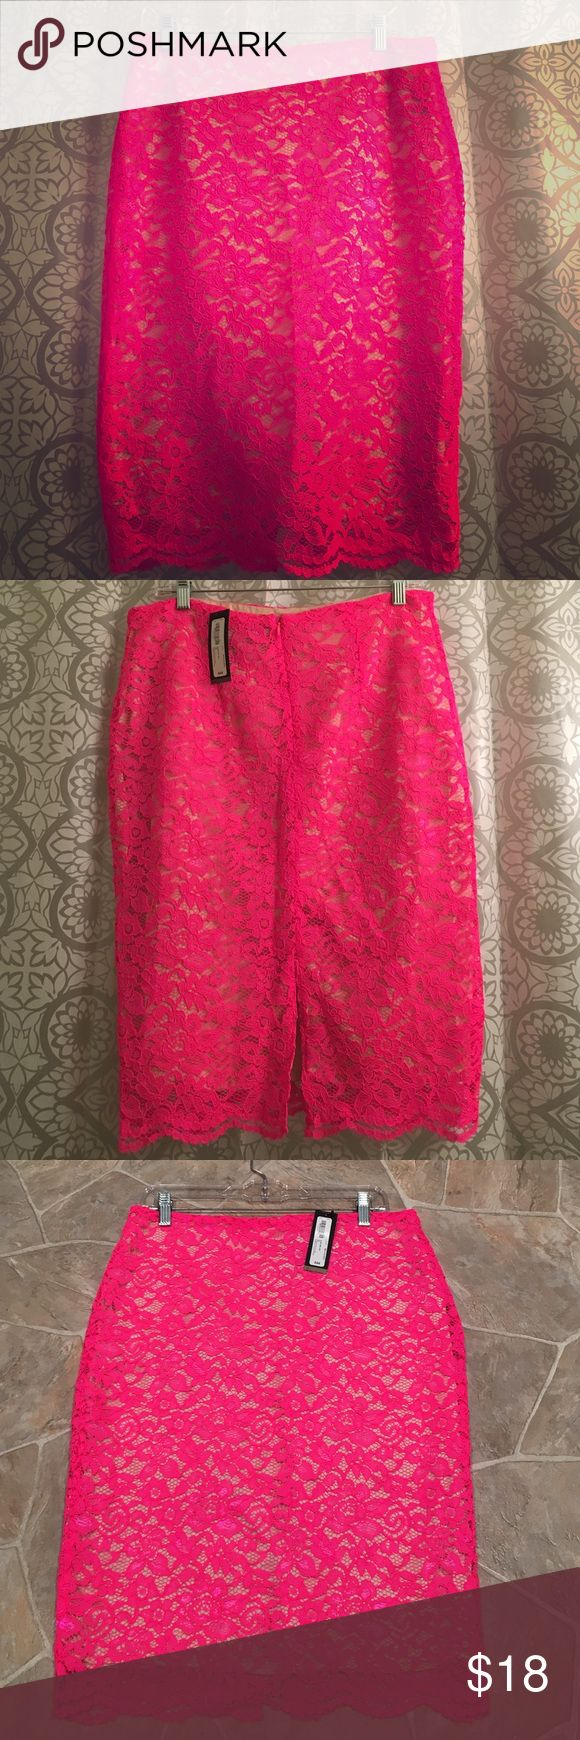 NWT Pink Lace Pencil Skirt Size 12 New with tags pink lace pencil skirt size 12 from Worthington. Skirt is 25 inches long and 16 inches wide at top. Worthington Skirts Pencil